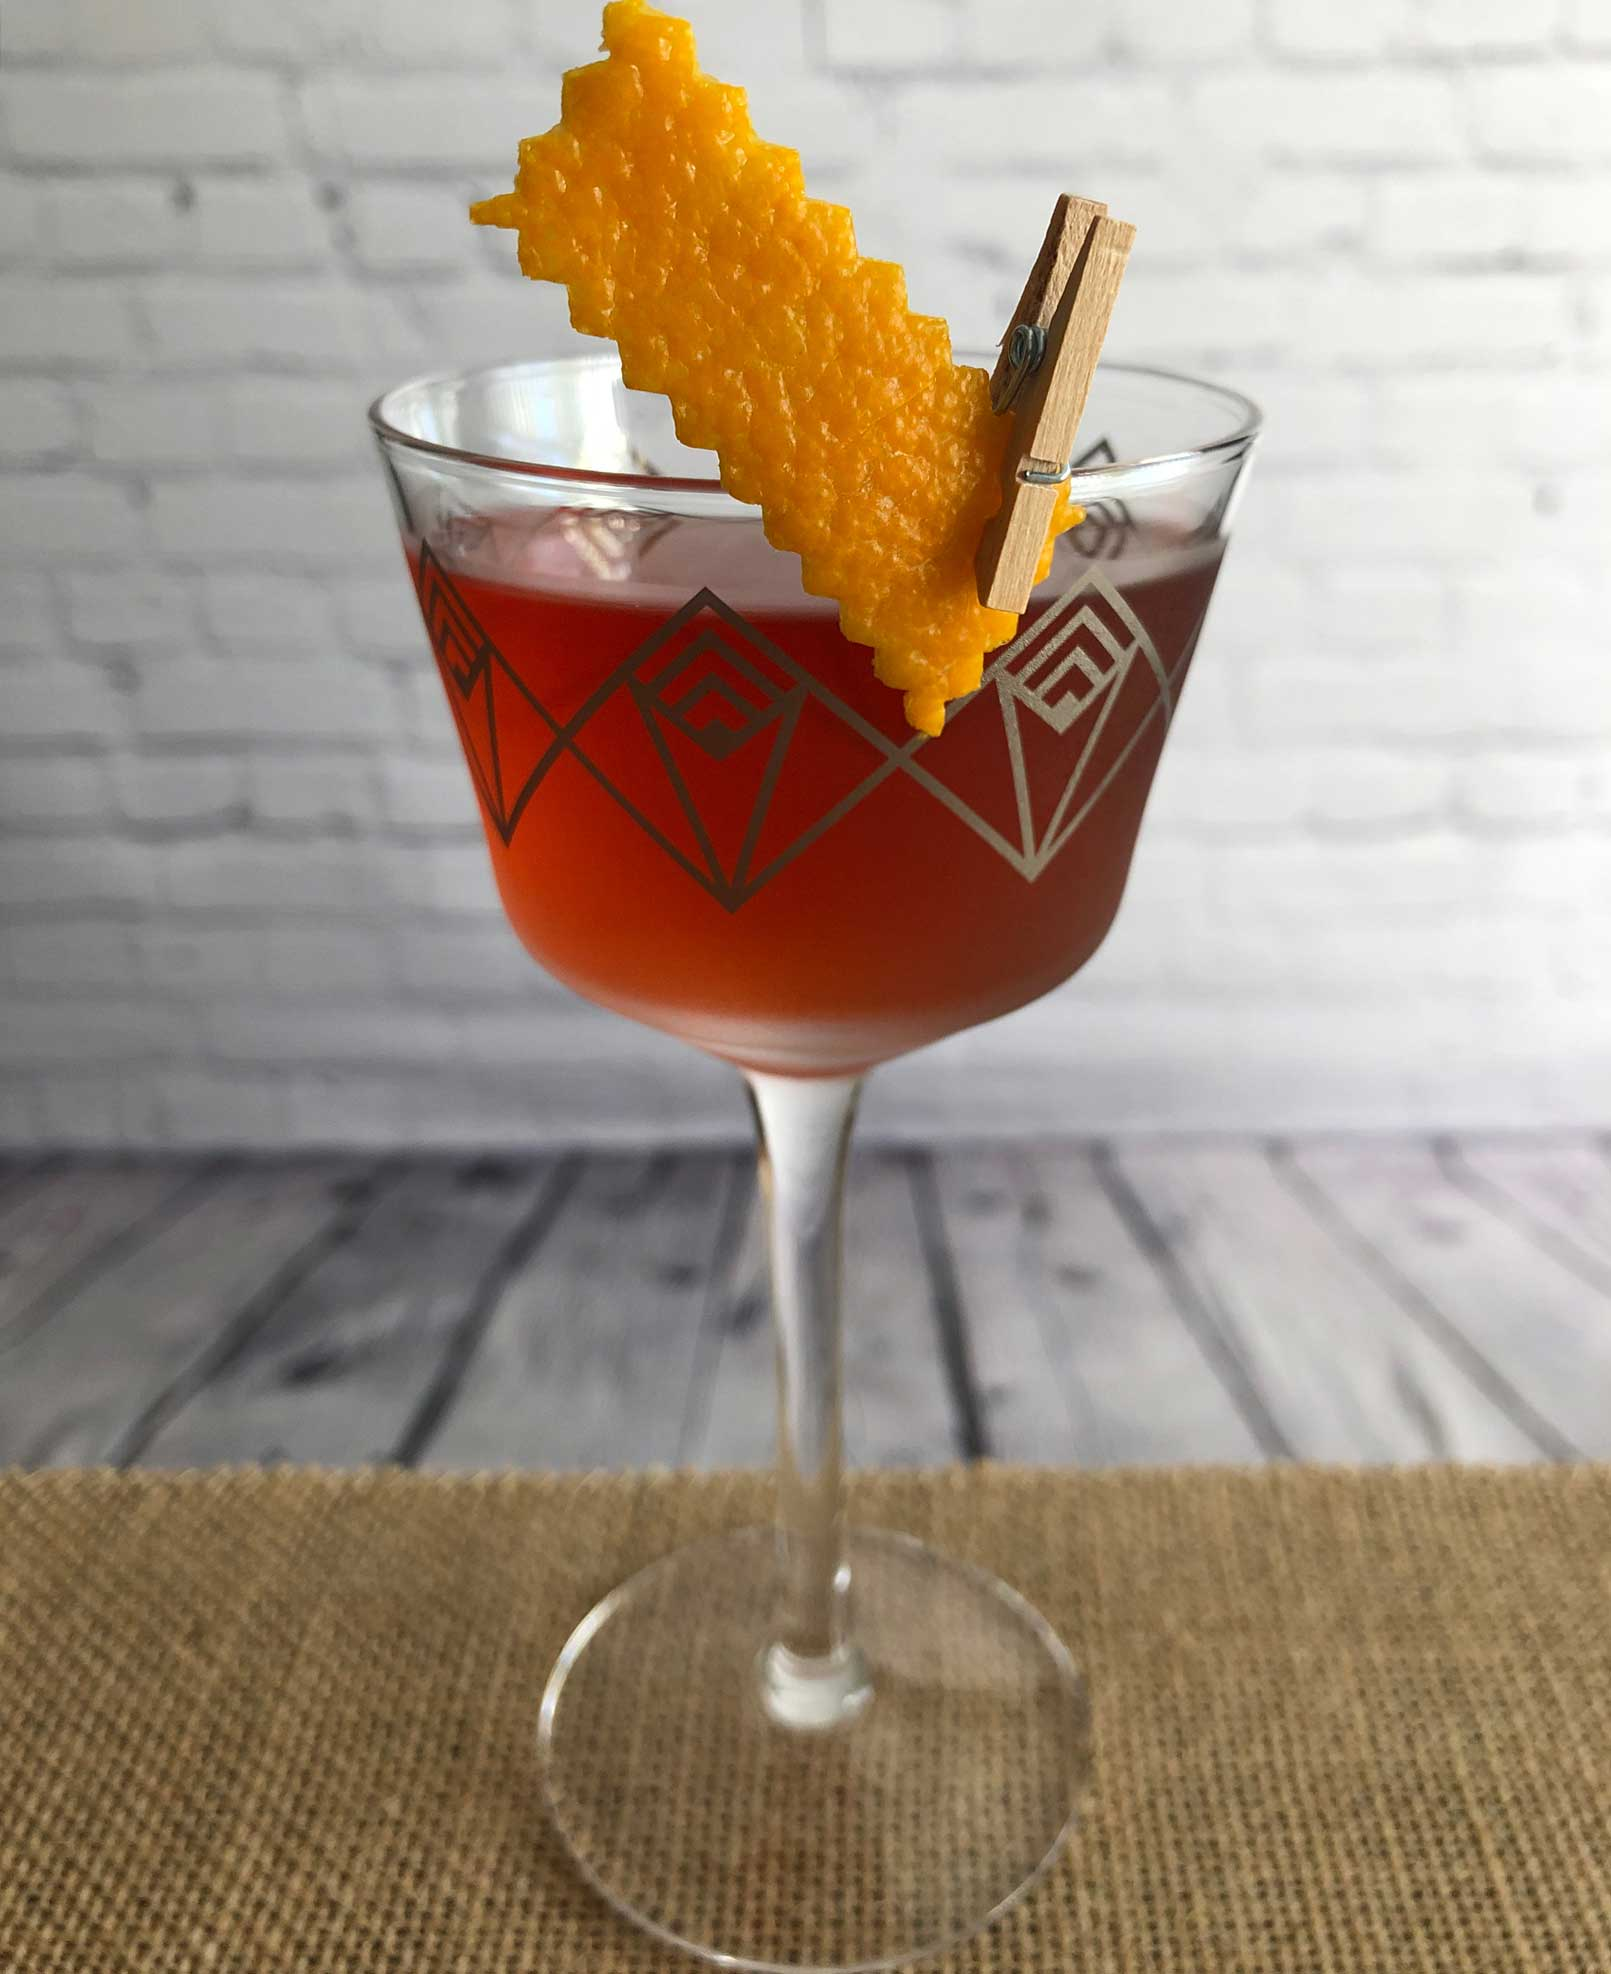 An example of the Byrrh Martinez, the mixed drink (cocktail) featuring Hayman's Old Tom Gin, Byrrh Grand Quinquina, and maraschino liqueur; photo by Lee Edwards